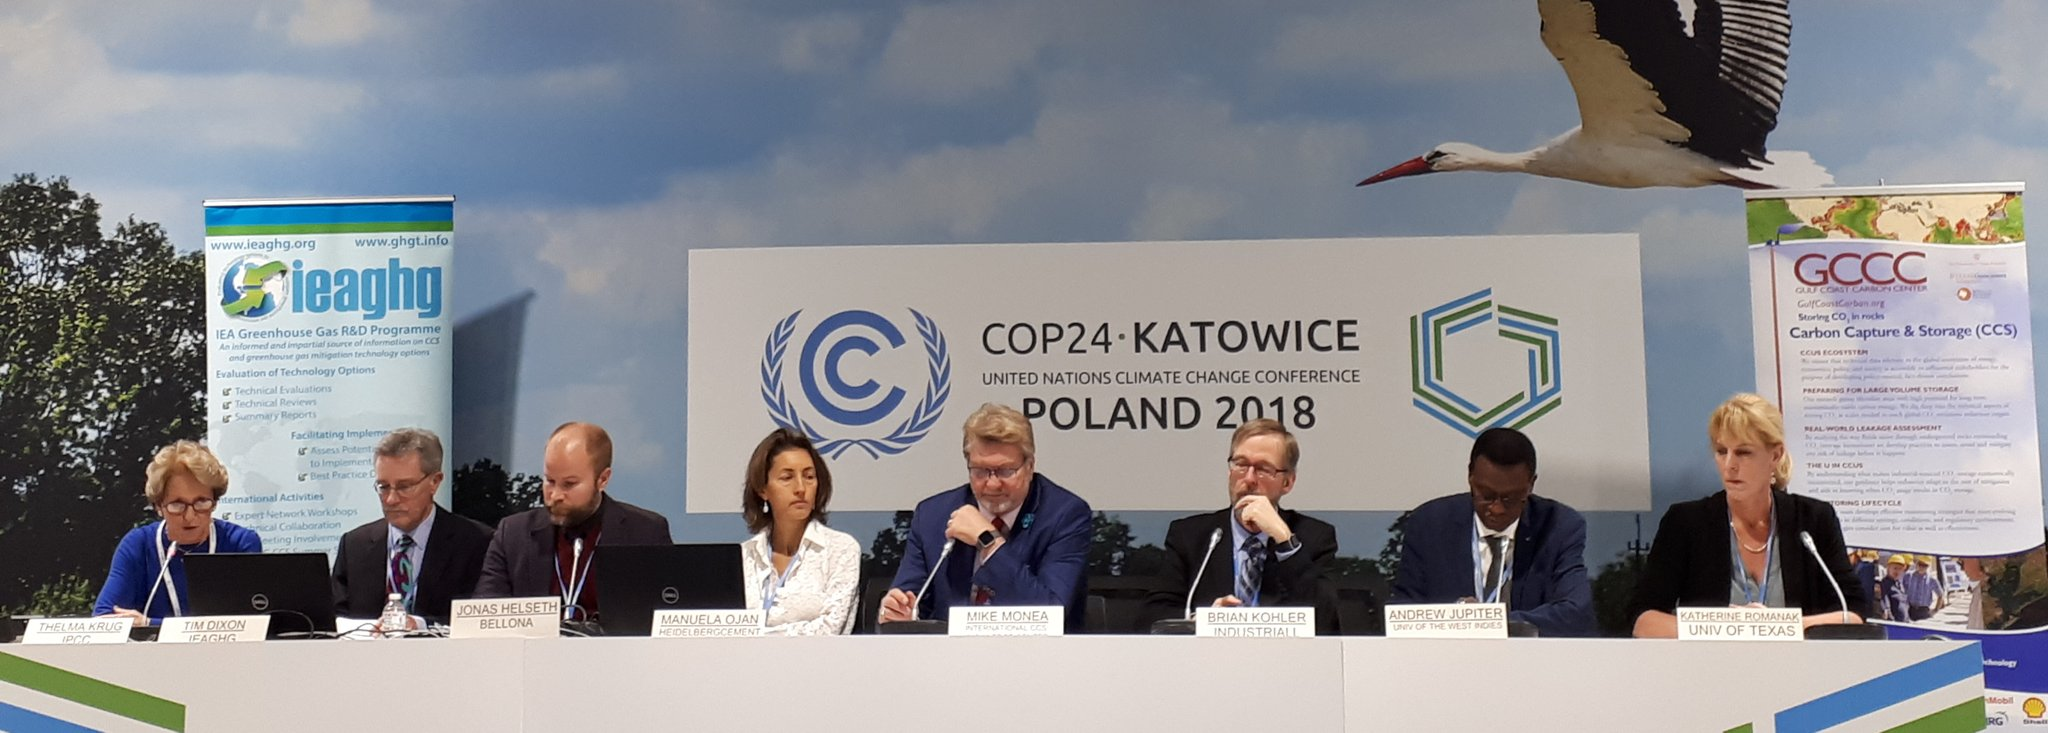 "Photo of the panel at the only CCS-dedicated site event at COP24 titled ""Carbon Capture and Storage (CCS) for decarbonising industry in developed and developing countries."""